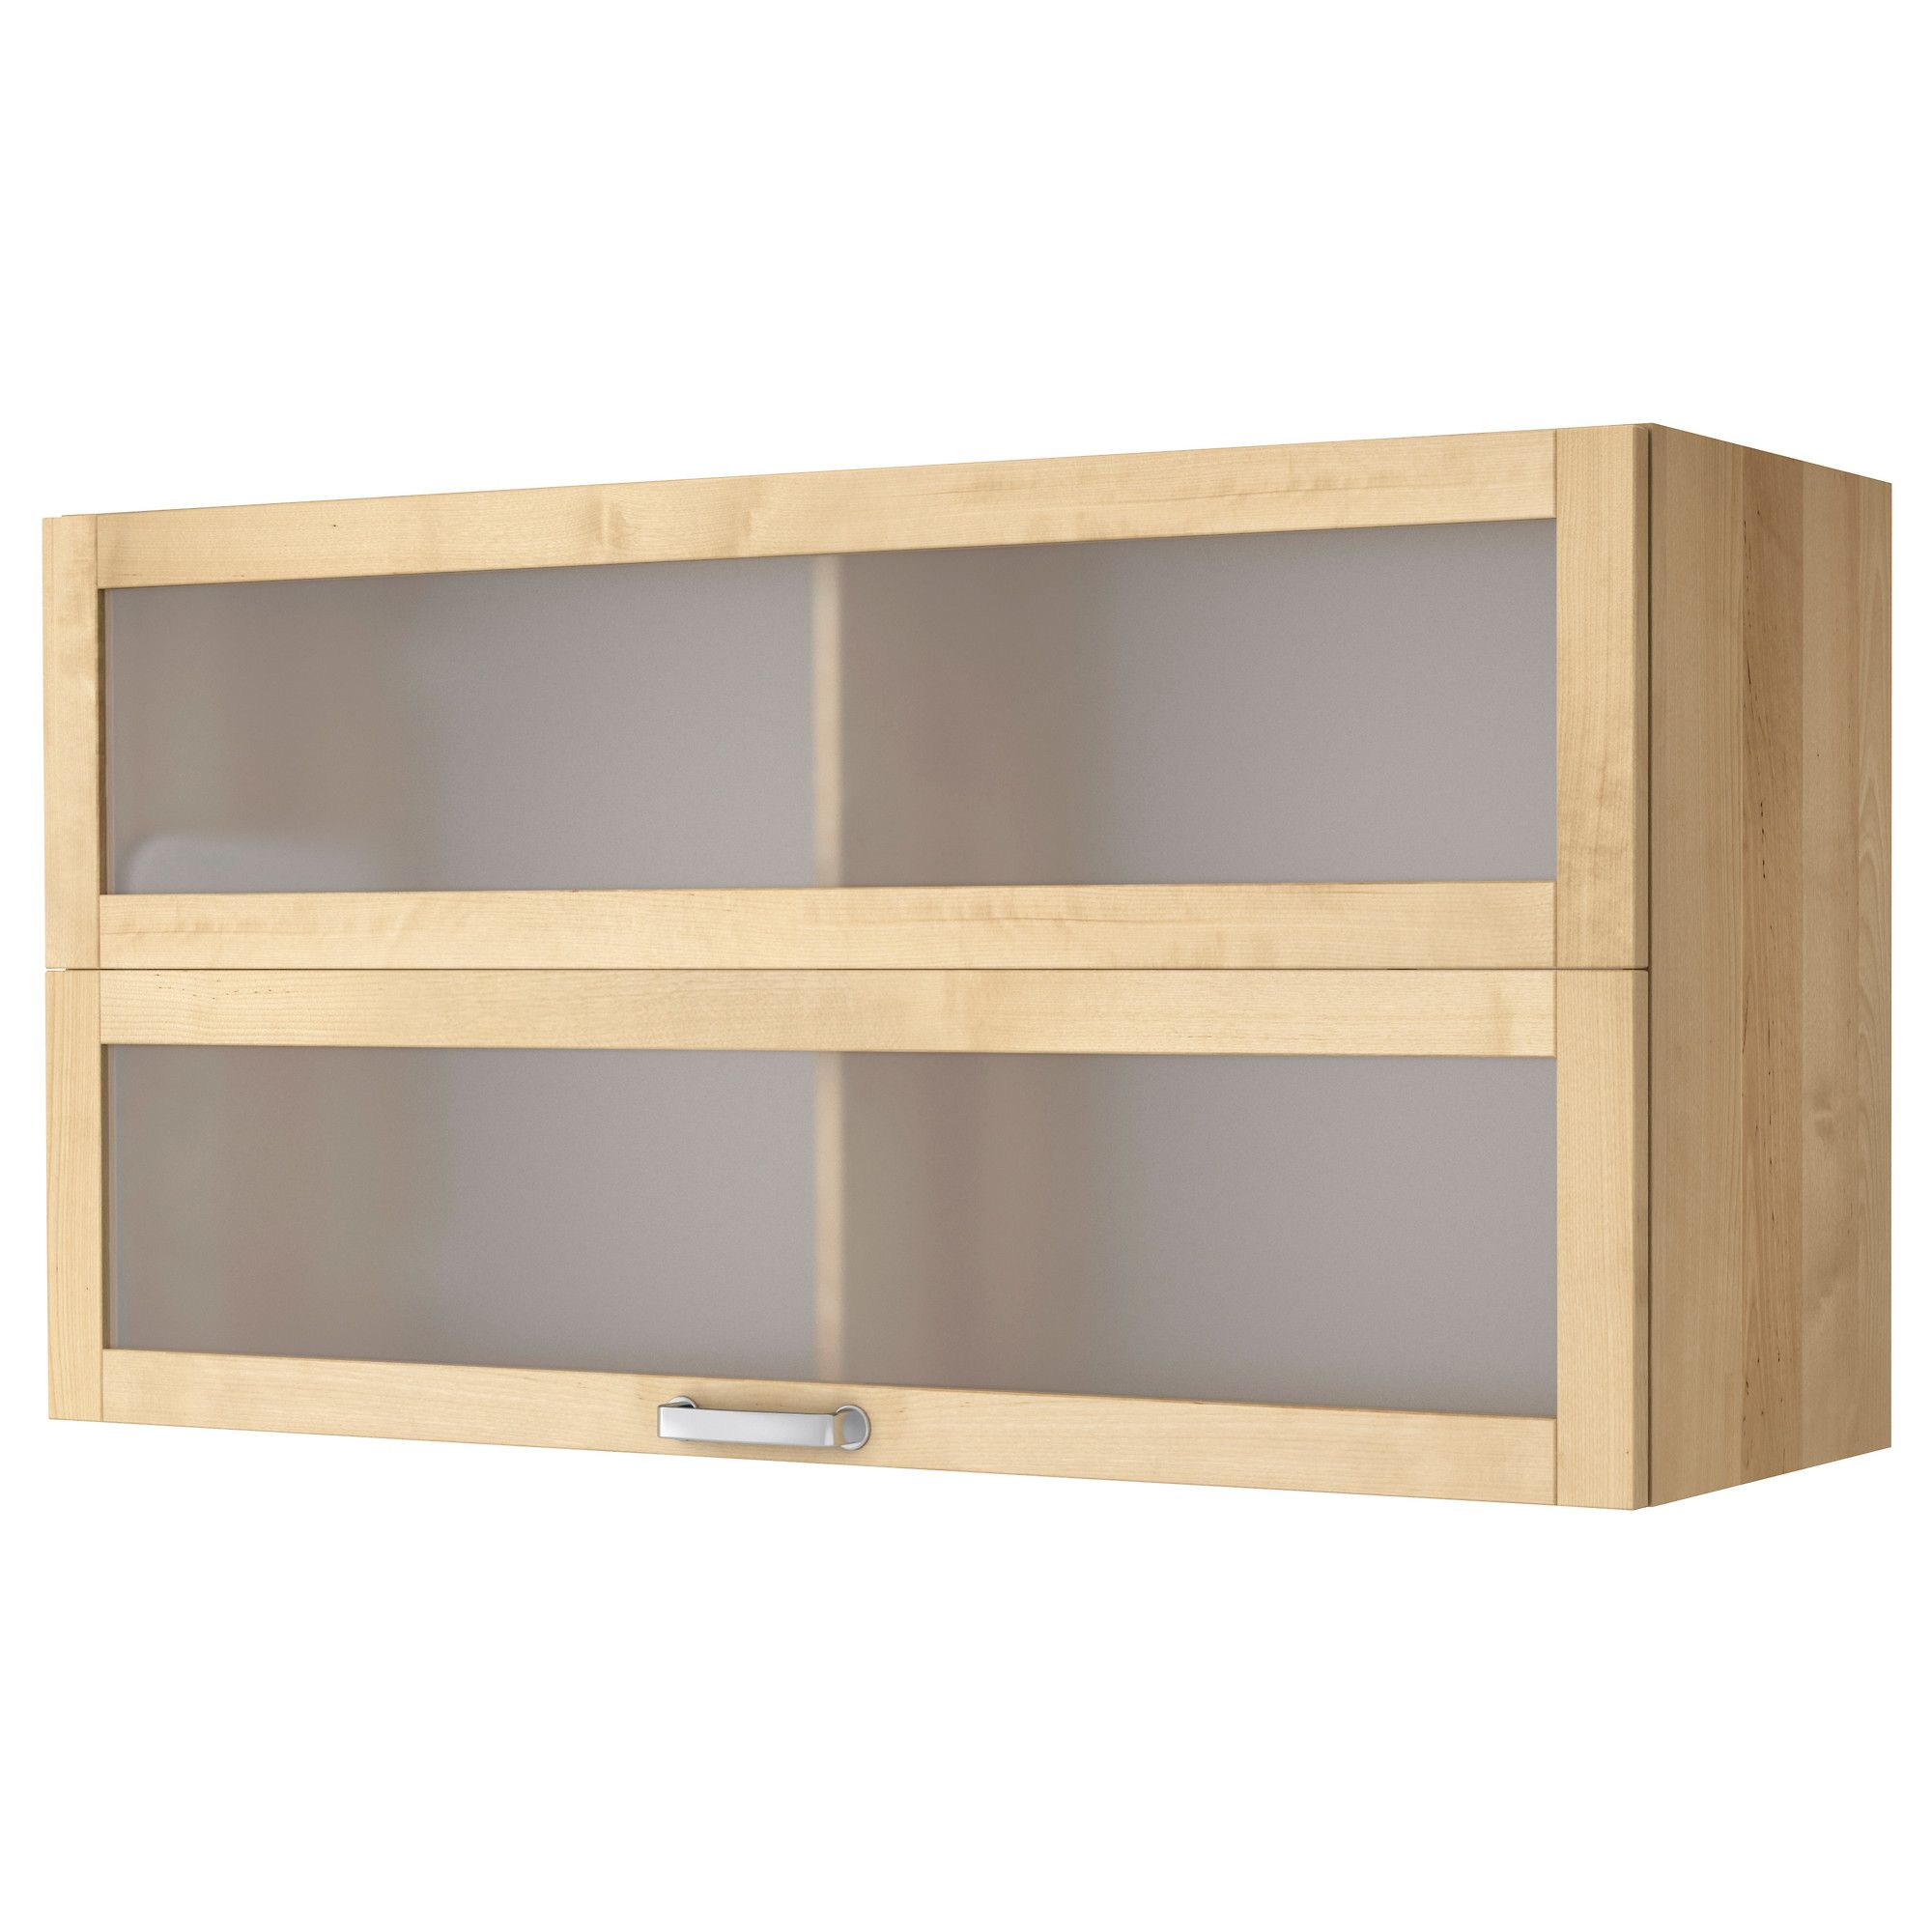 Best Värde Glass Door Wall Cabinet Birch Ikea 508 640 x 480